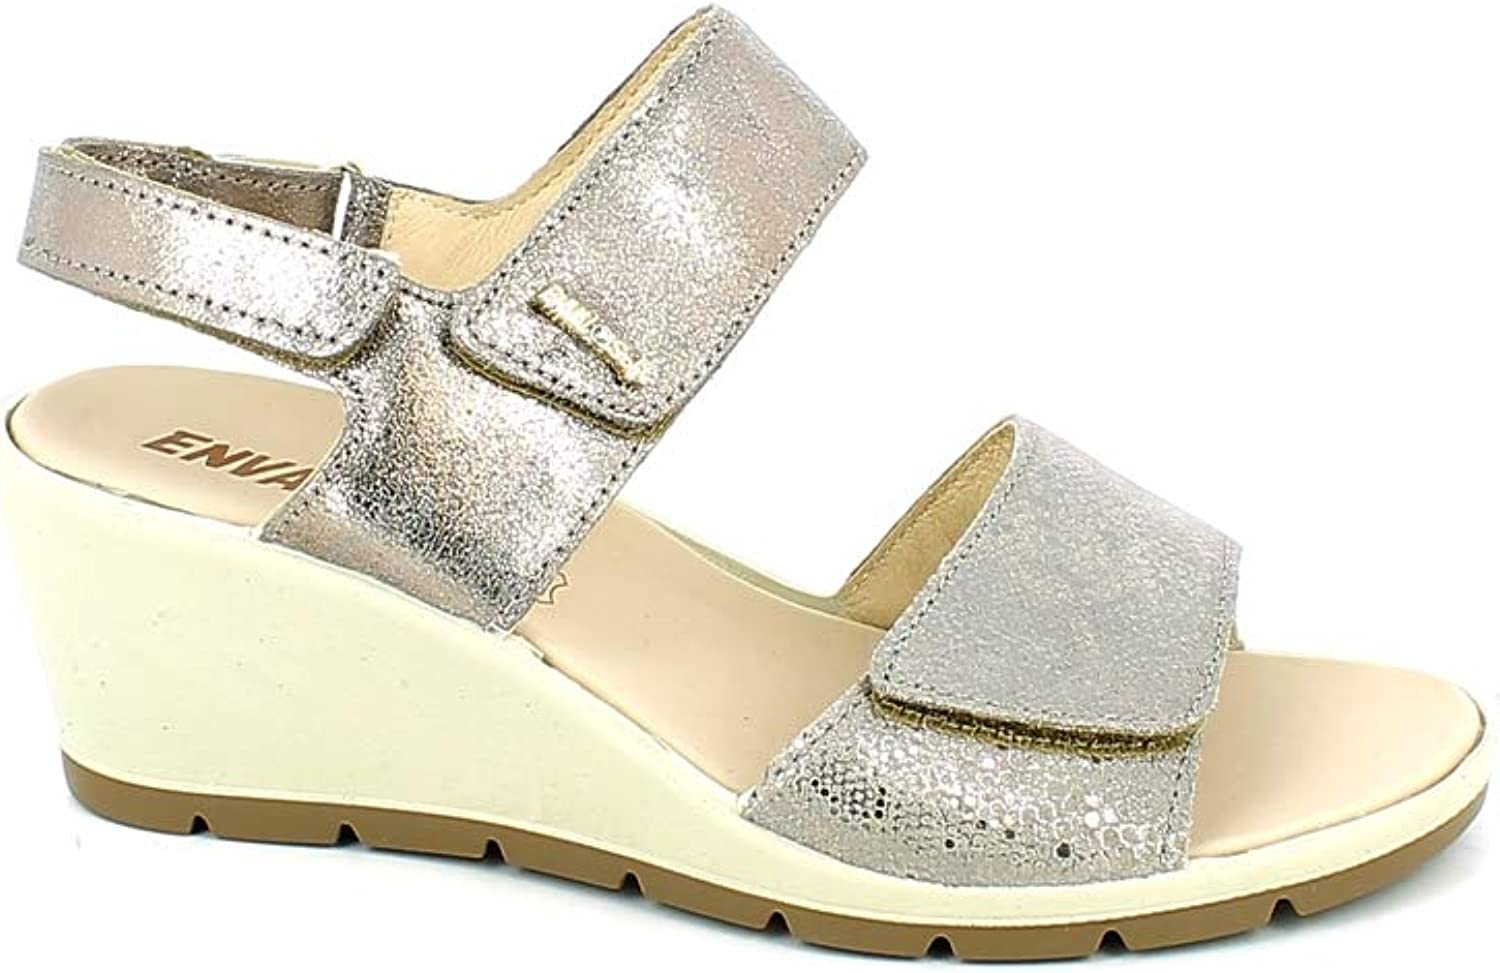 ENVAL SOFT 3292844 Women's Beige Leather Wedge Sandals Made in